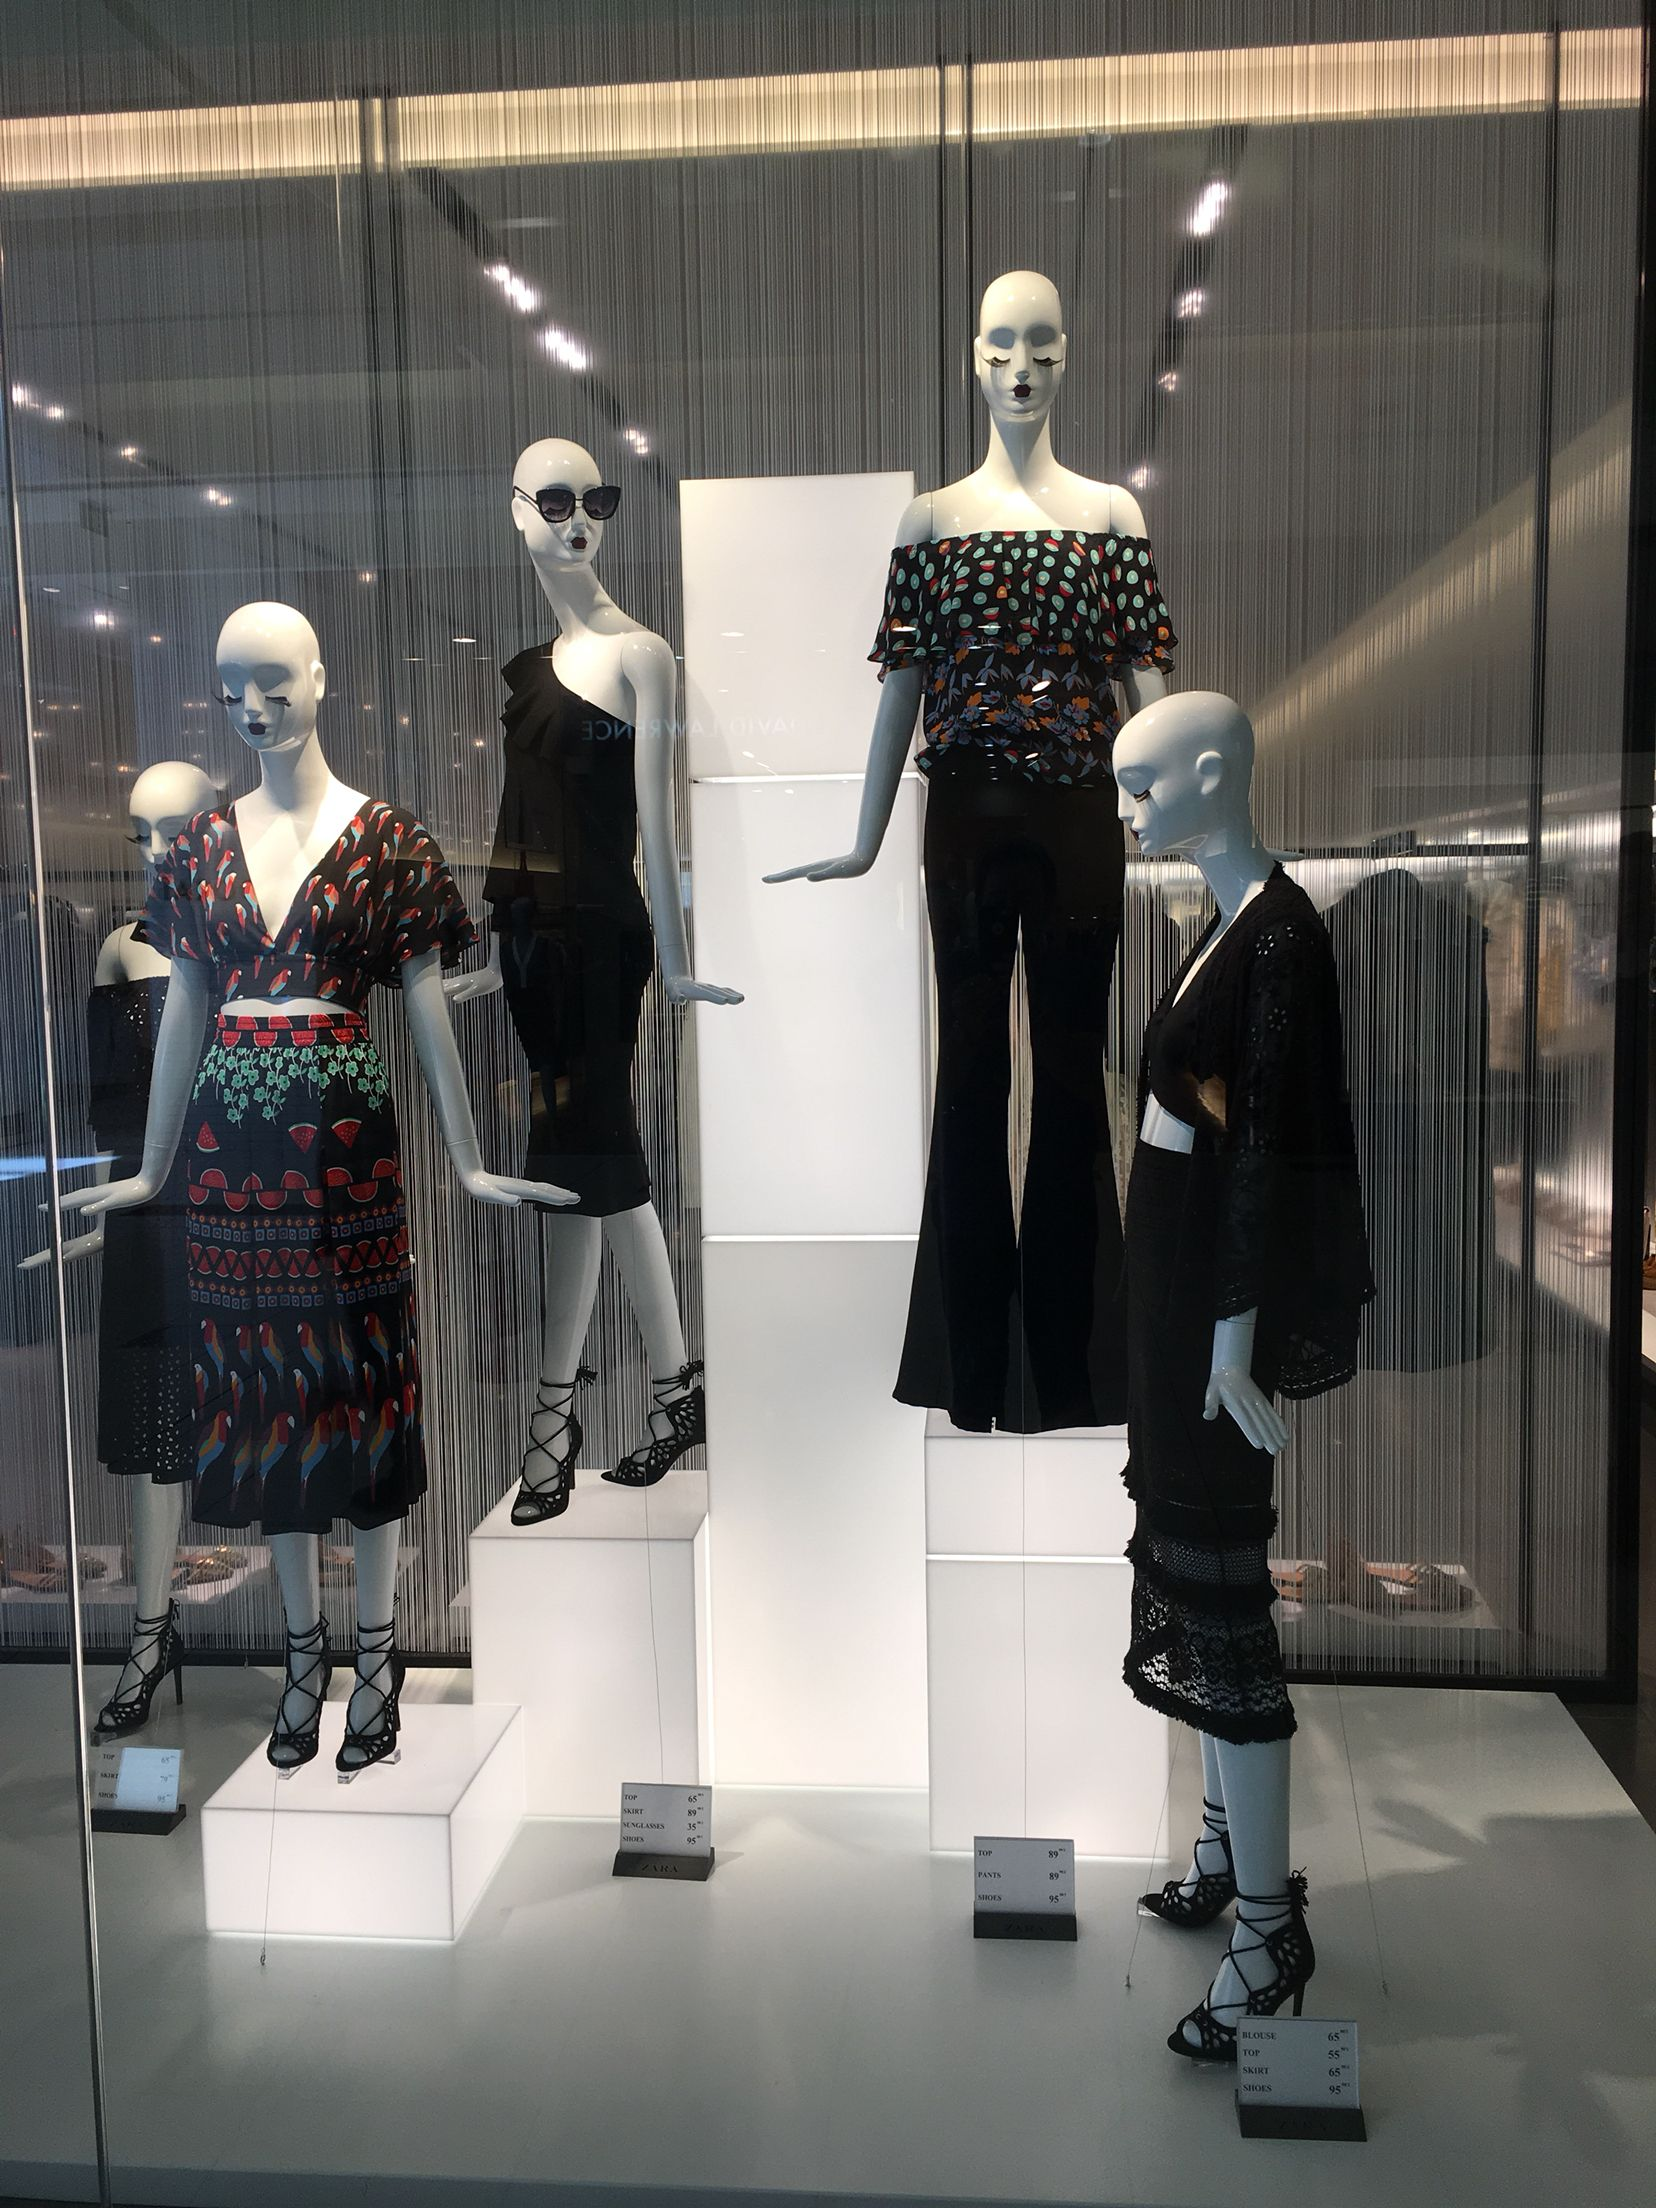 """ZARA, Sylvia Park Shopping Centre, Auckland, New Zealand, """"We have arrived in New Zealand"""", uploaded by Ton van der Veer"""